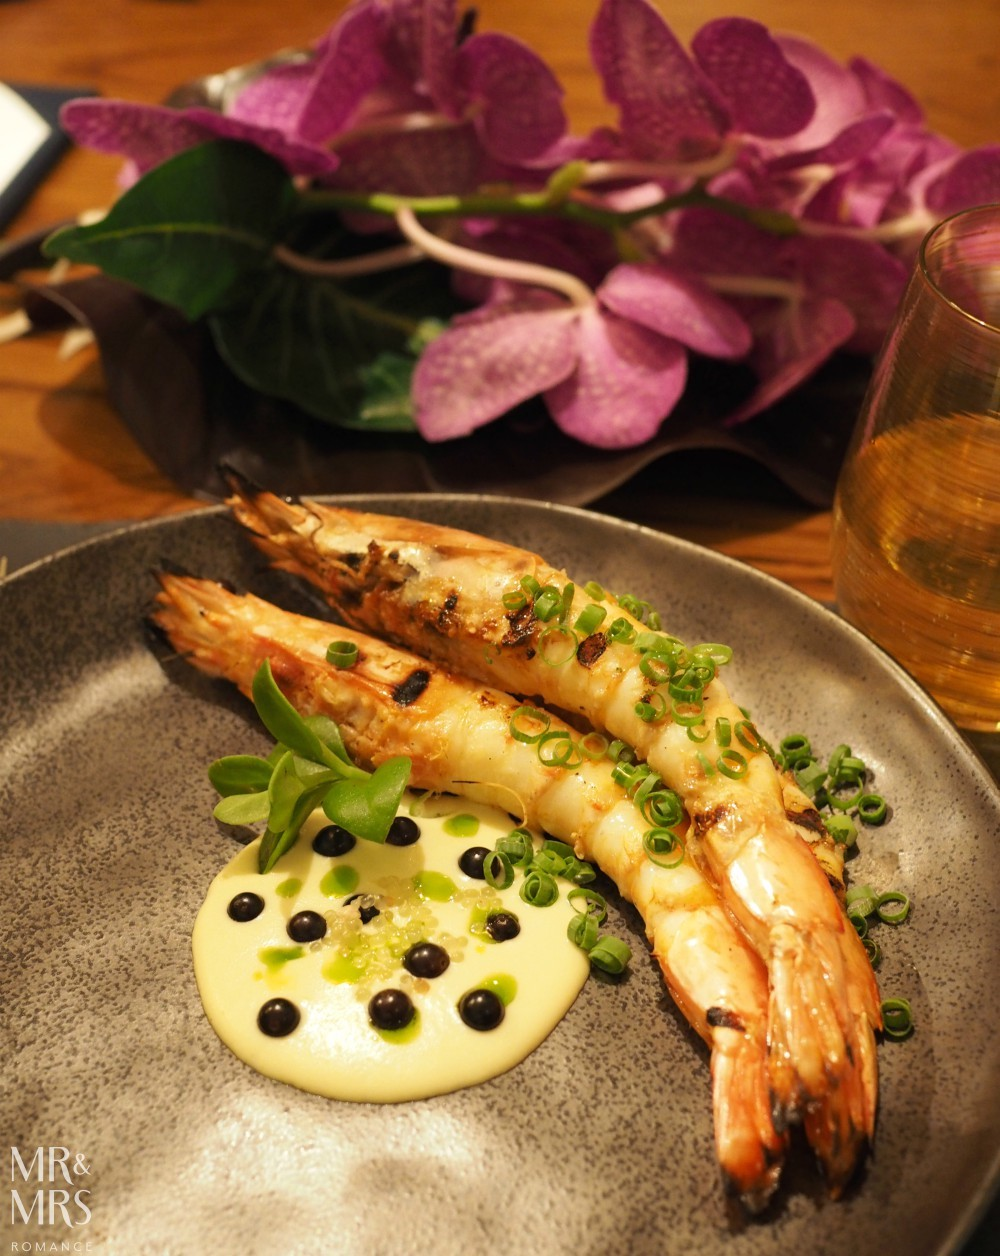 Mode at Four Seasons Sydney autumn menu 2018 - Yamba prawns